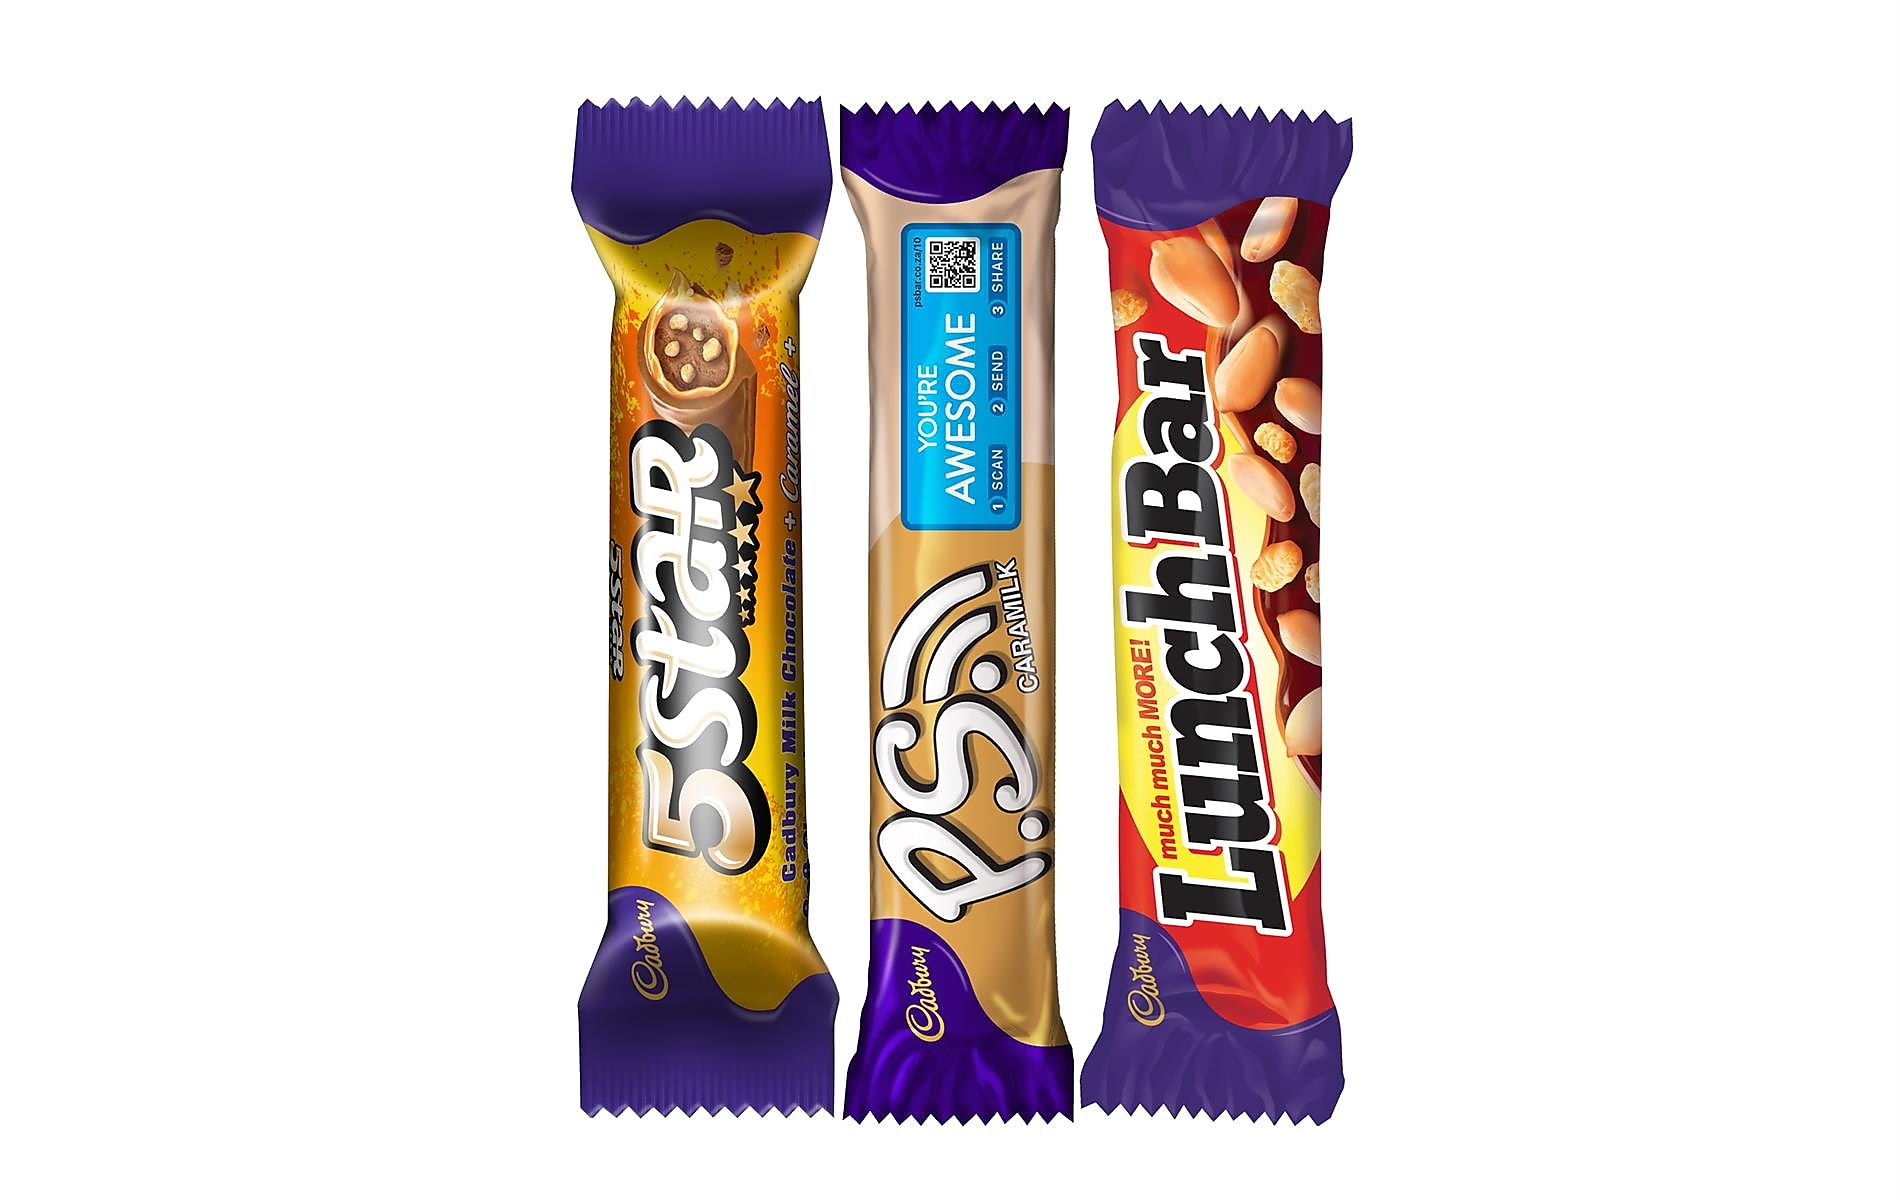 Mix N' Match Any 3 Cadbury Chocolates Bars